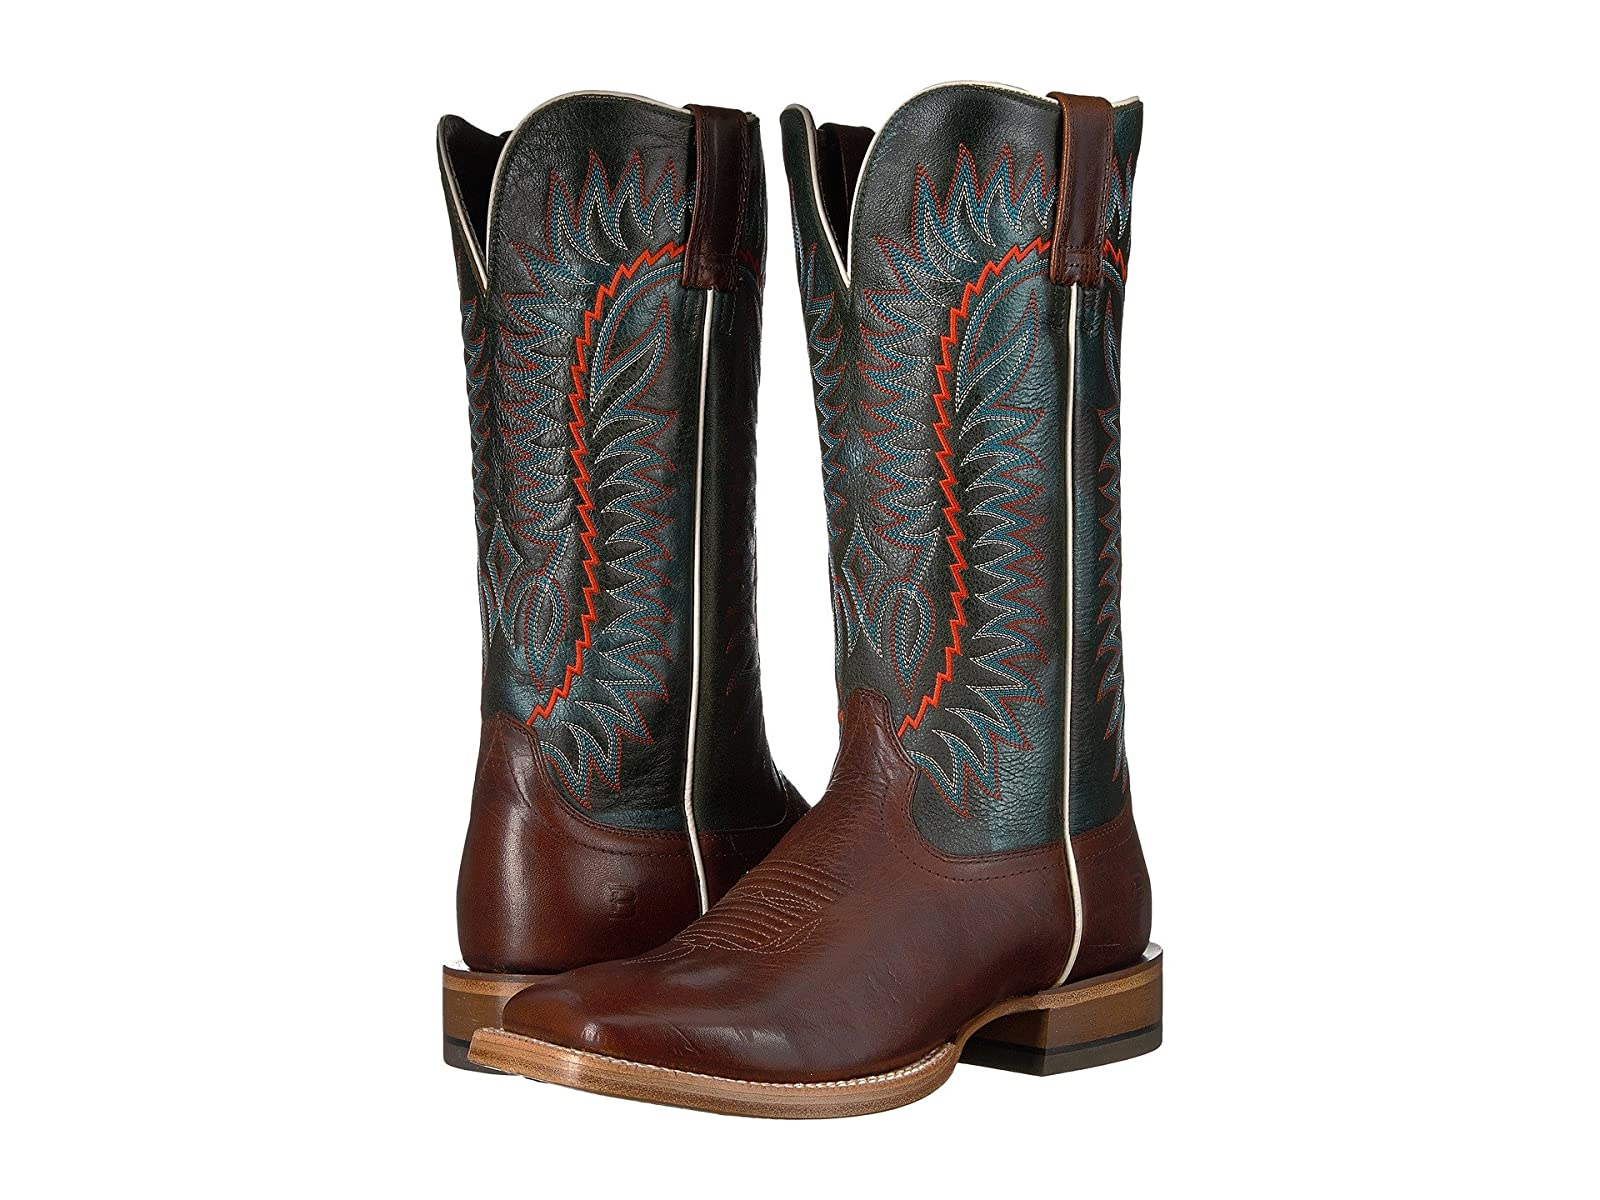 Ariat Relentless EliteSelling fashionable and eye-catching shoes